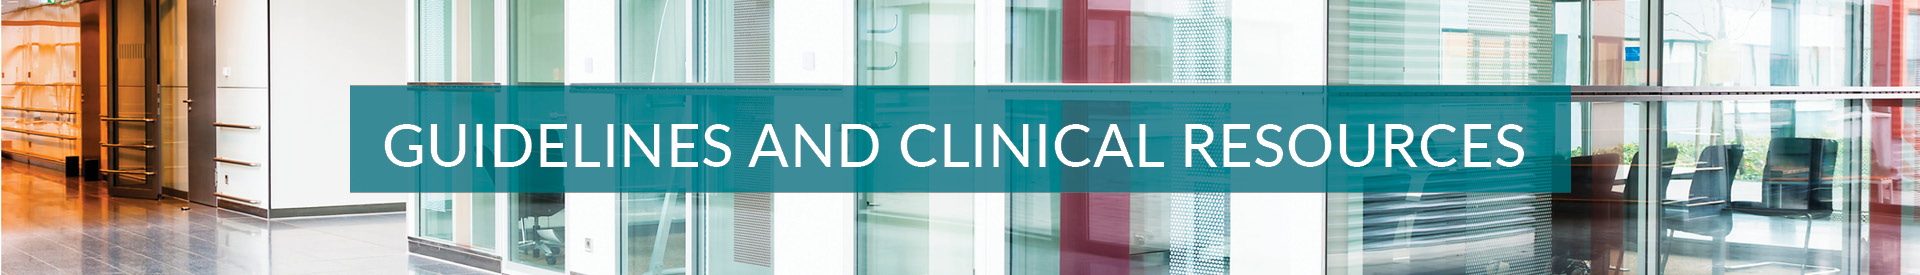 Guidelines and Clinical Resources